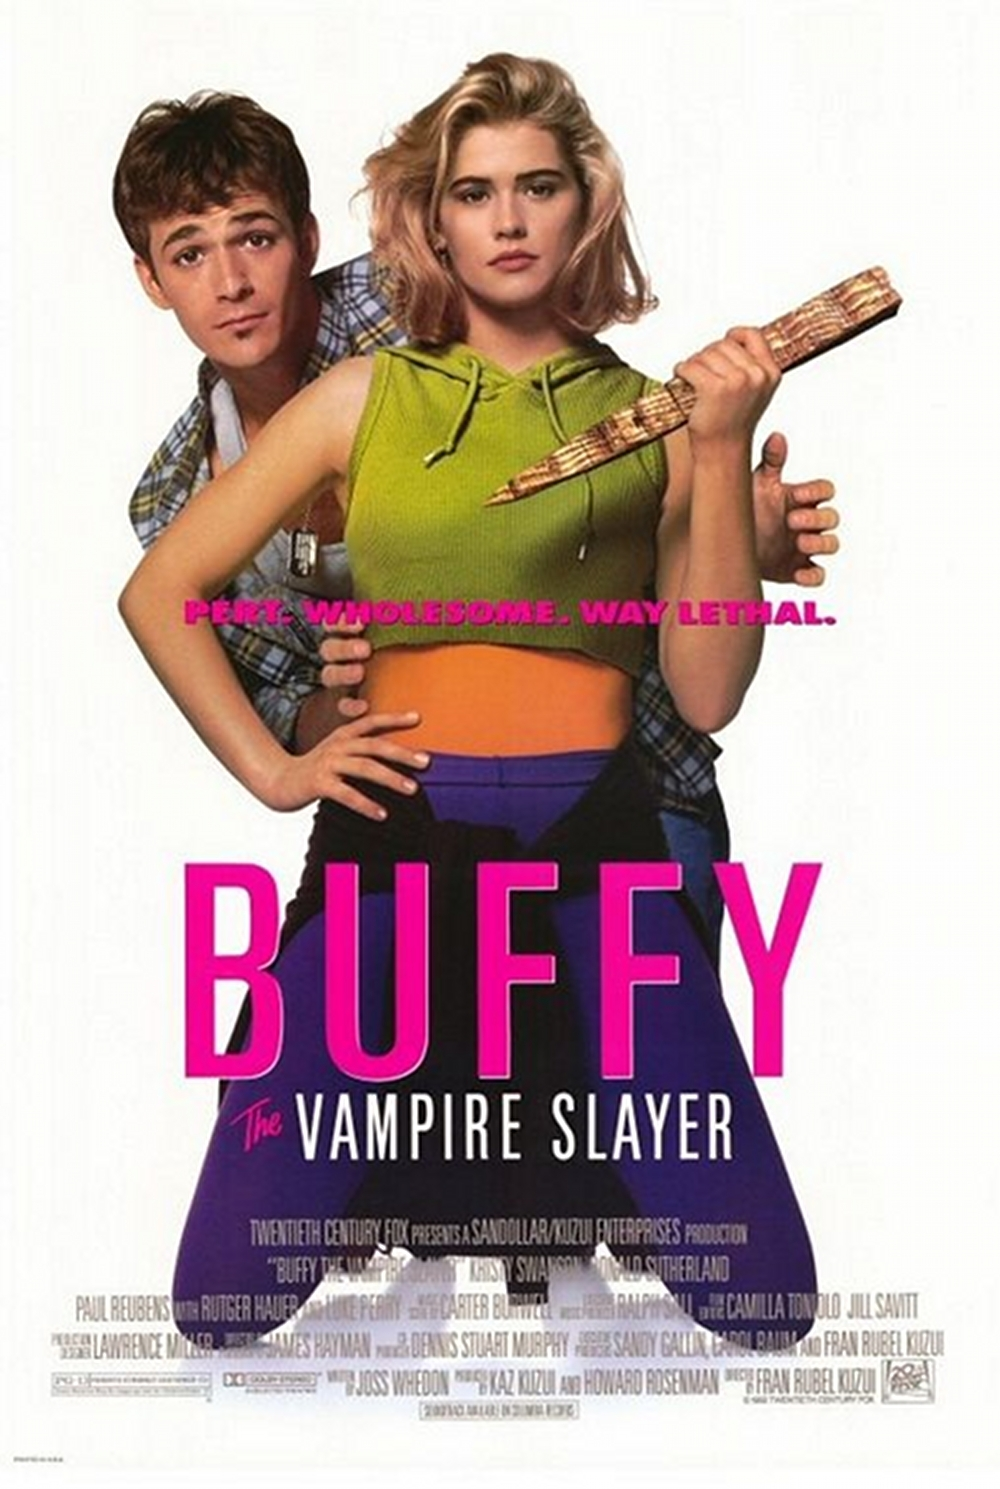 hey watch this buffy the vampire slayer longagoand